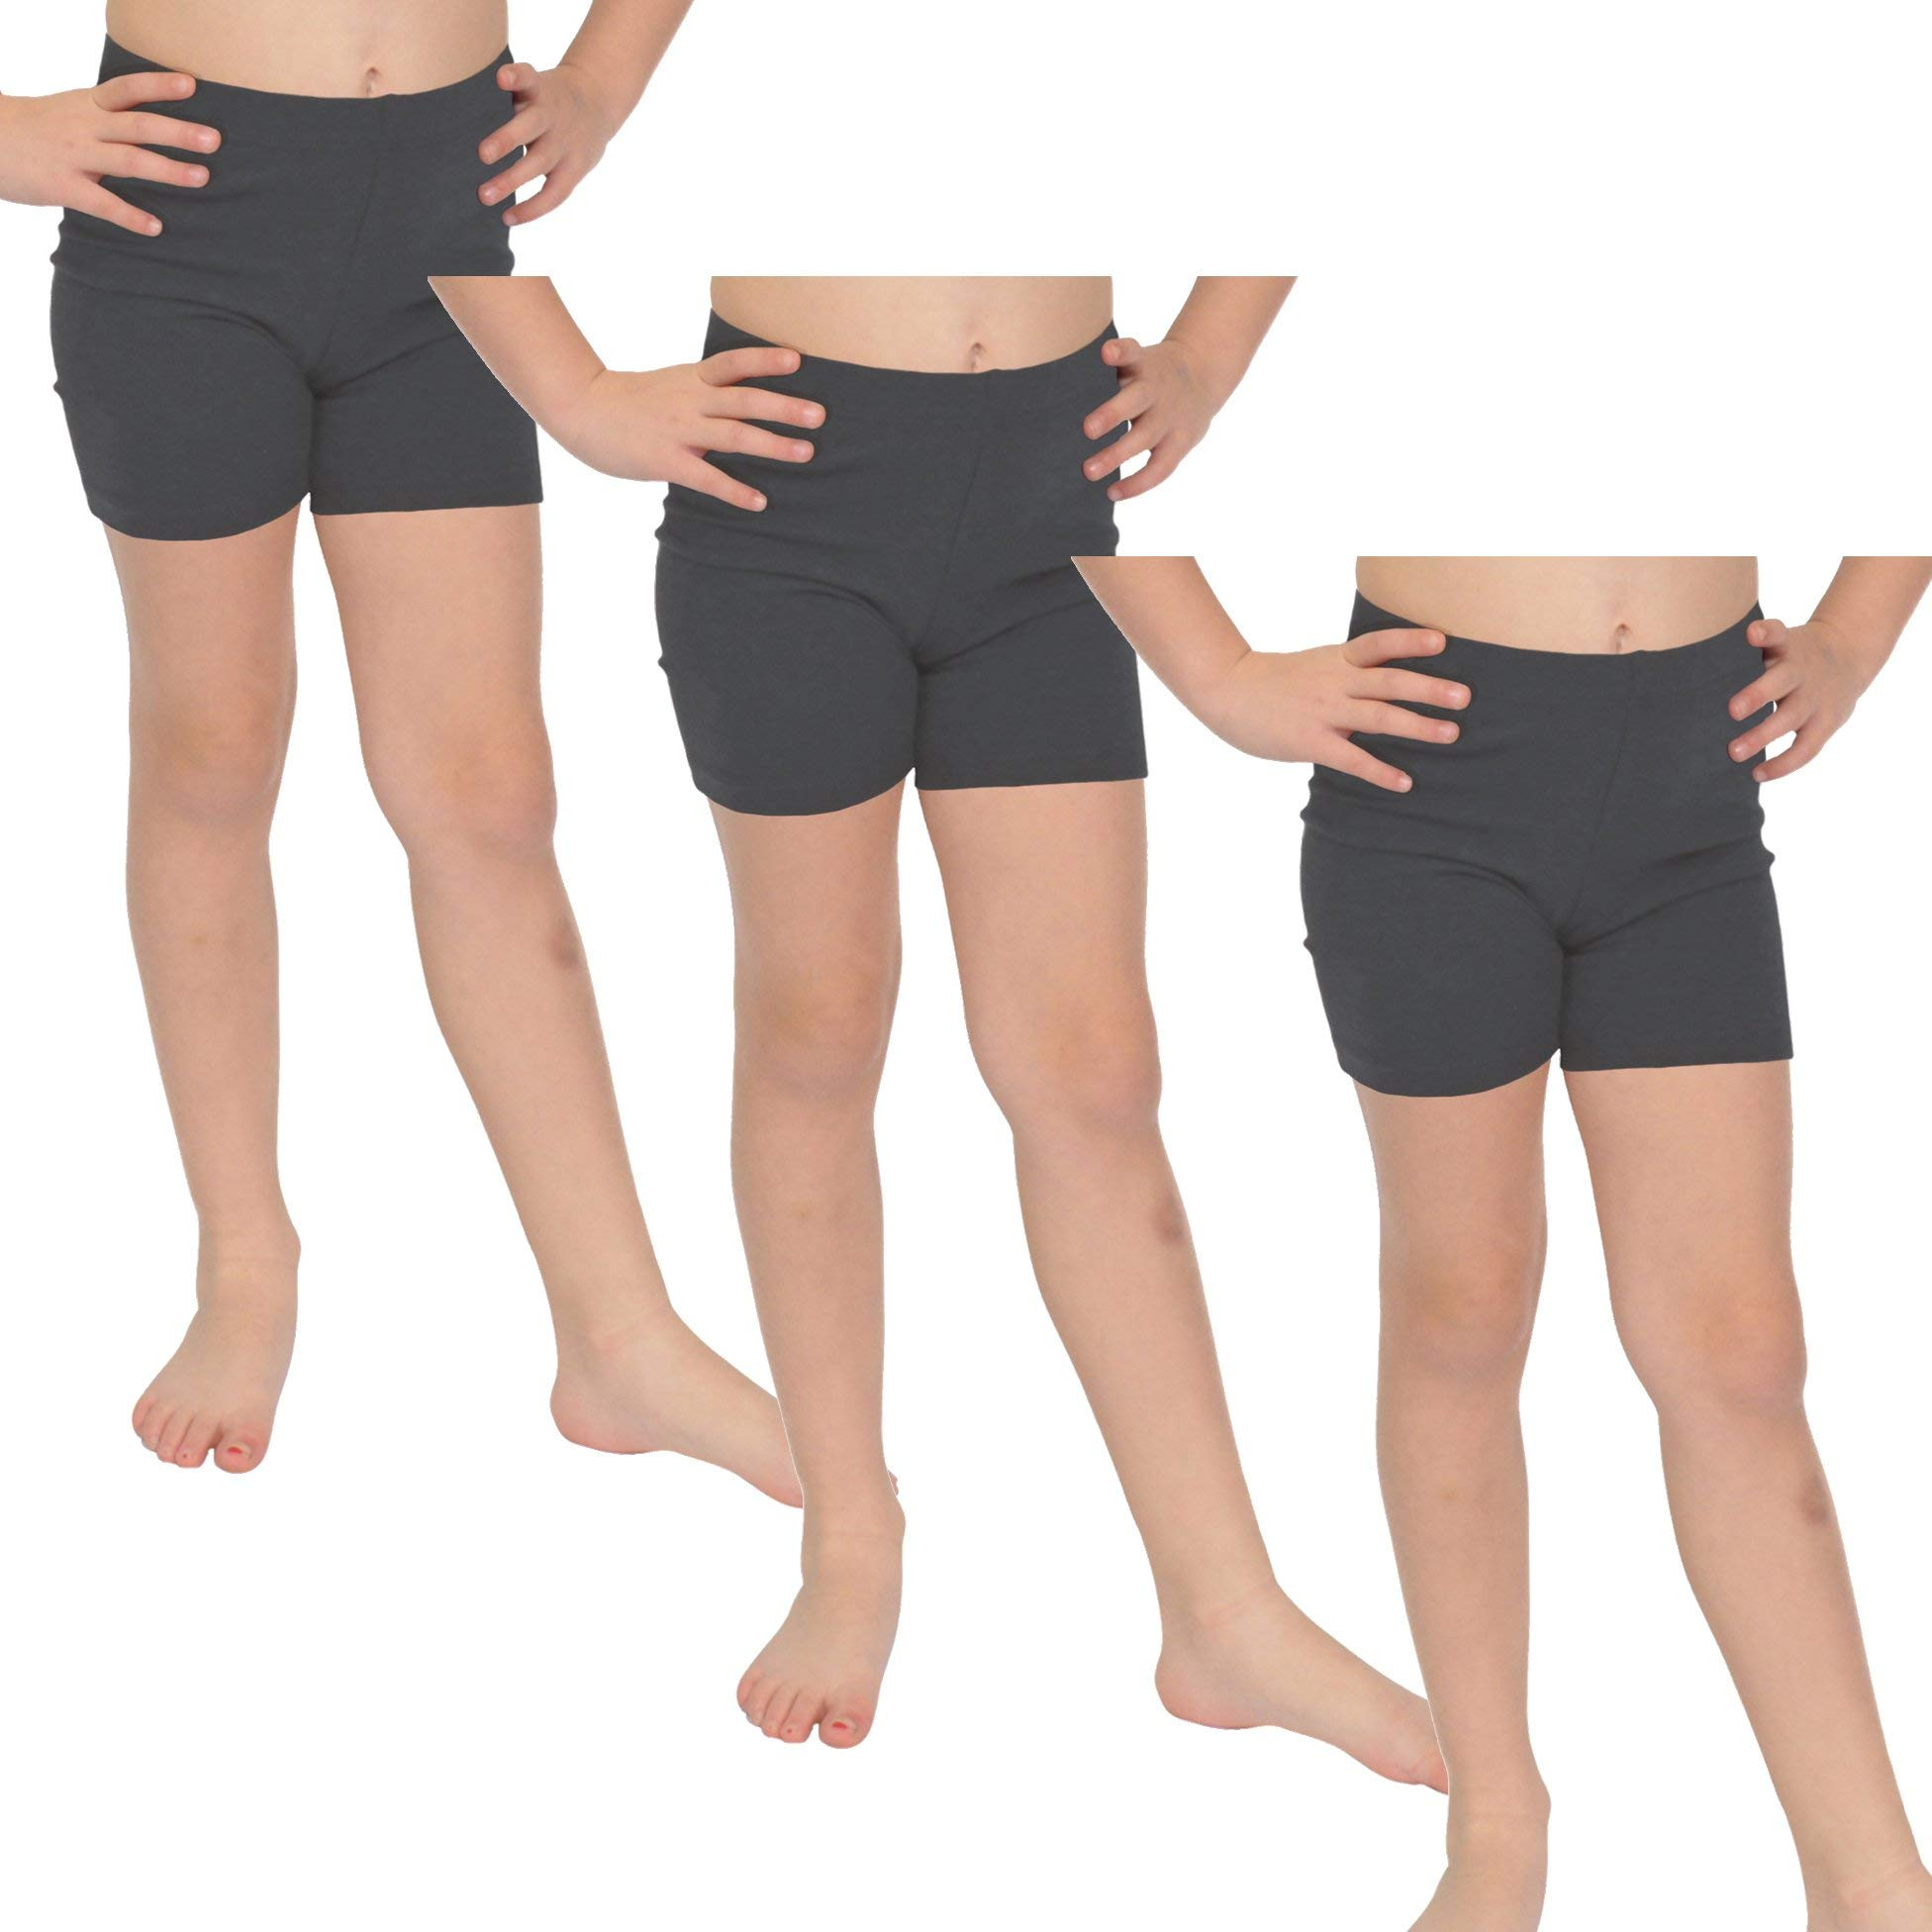 Stretch is Comfort Girl's Cotton Biker Shorts Set of 3 Pieces Charcoal Gray Small by Stretch is Comfort